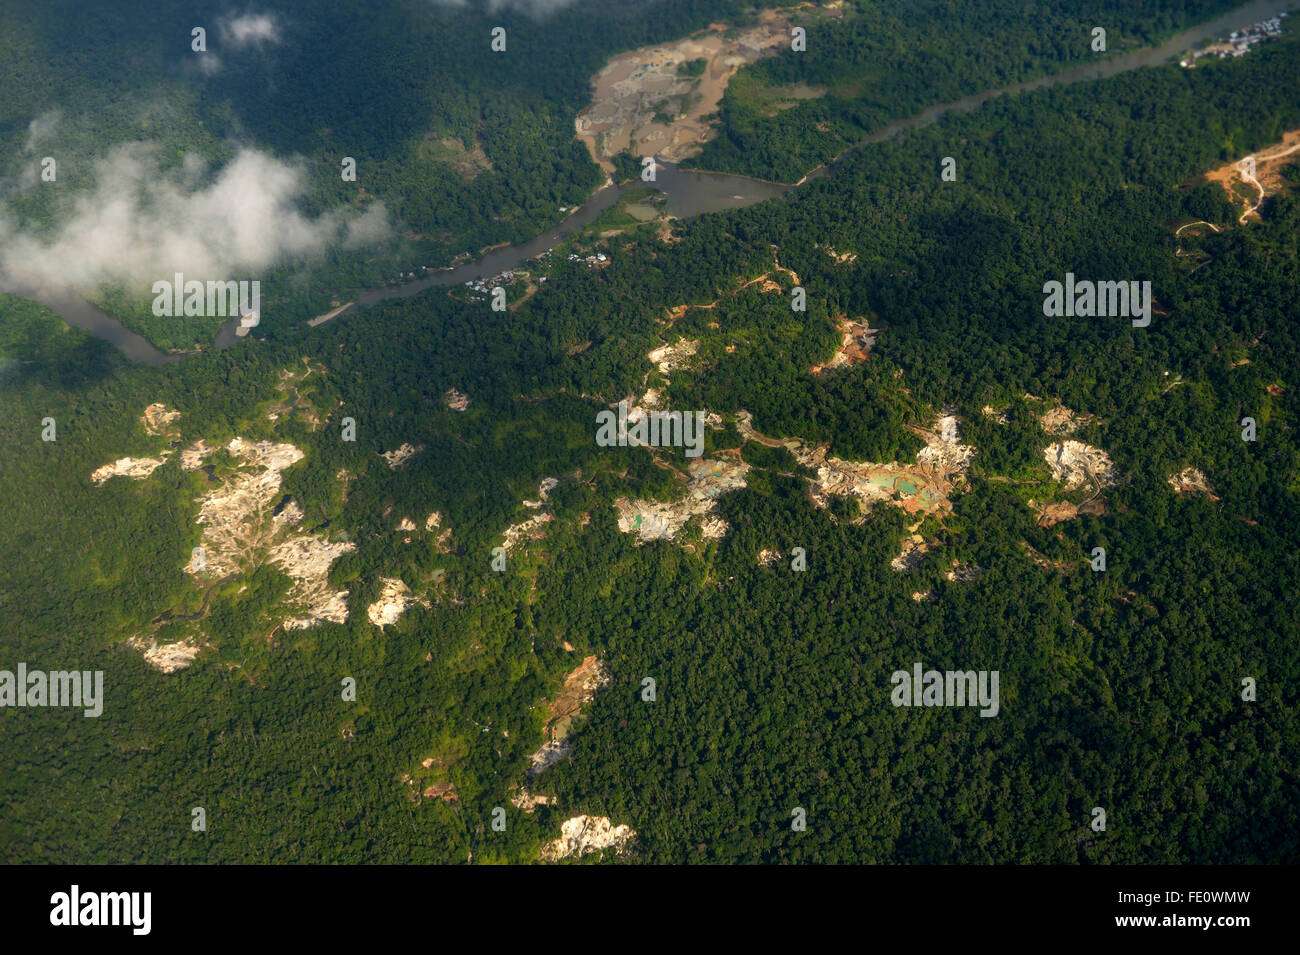 Illegal gold mines in rainforest, Chocó Department, Colombia - Stock Image